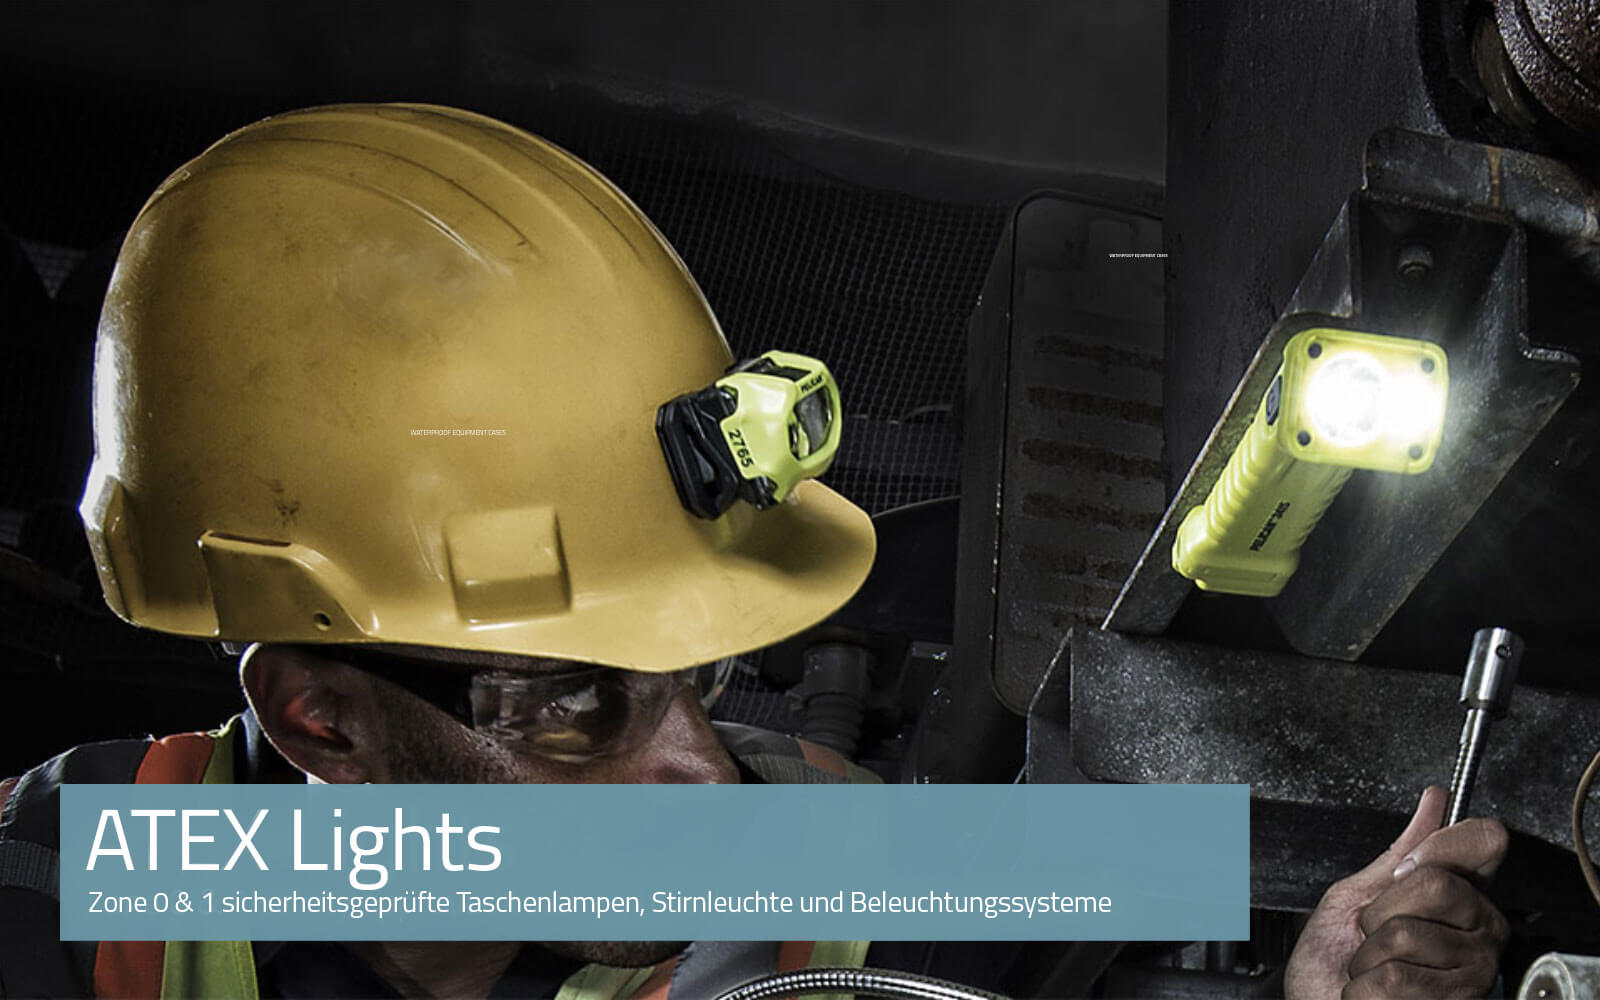 Zone 0 & 1 safety approved torches, headlamps and lighting systems. Compliant to ATEX Directive 2014/34/EU